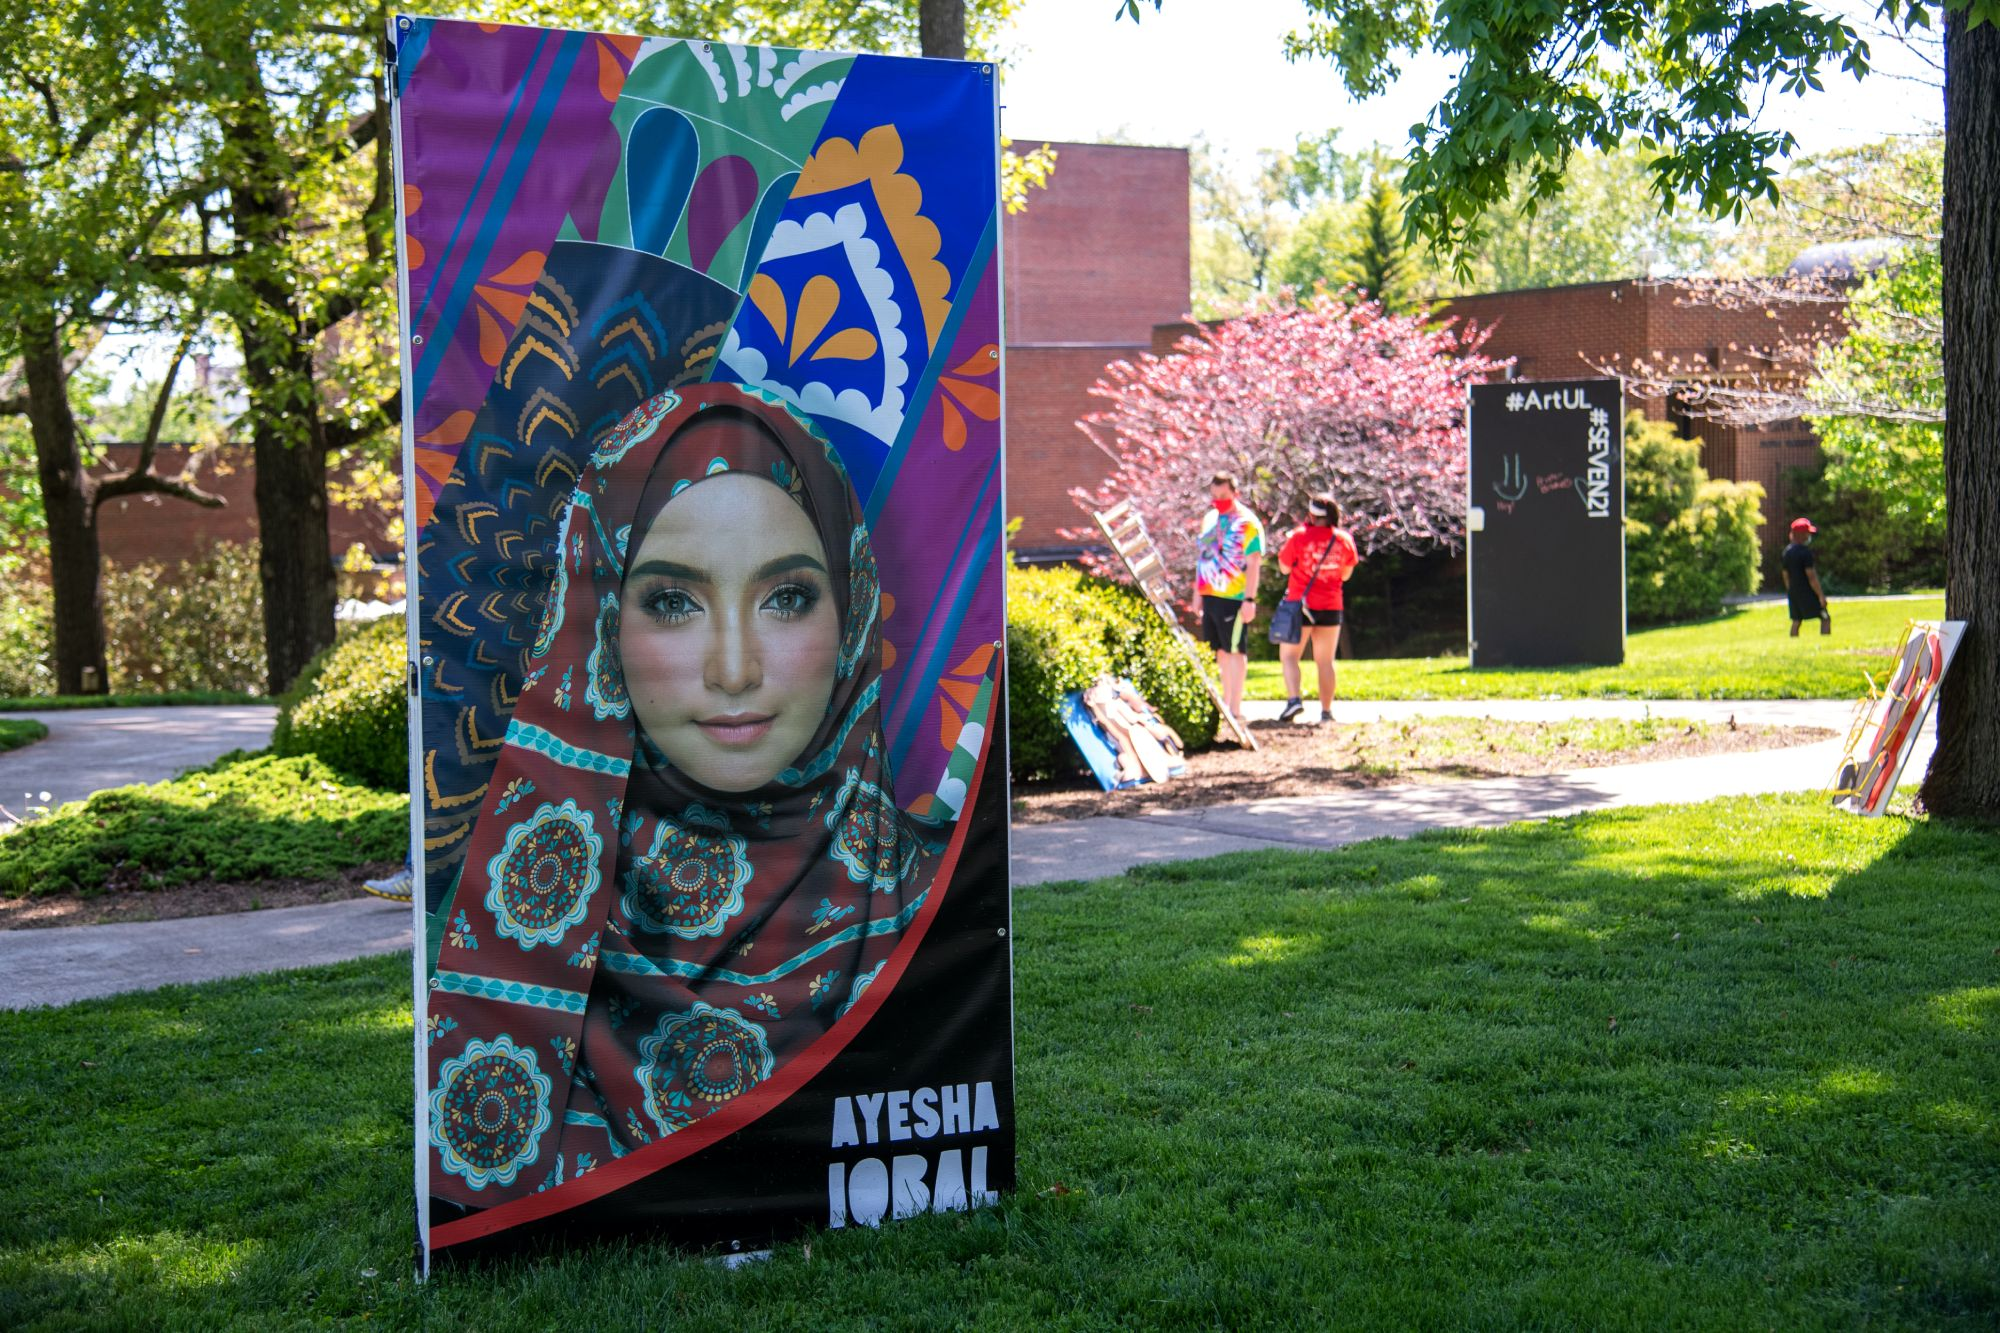 Fabric patterns created by Ayesha Iqbal displayed on a large stand outside